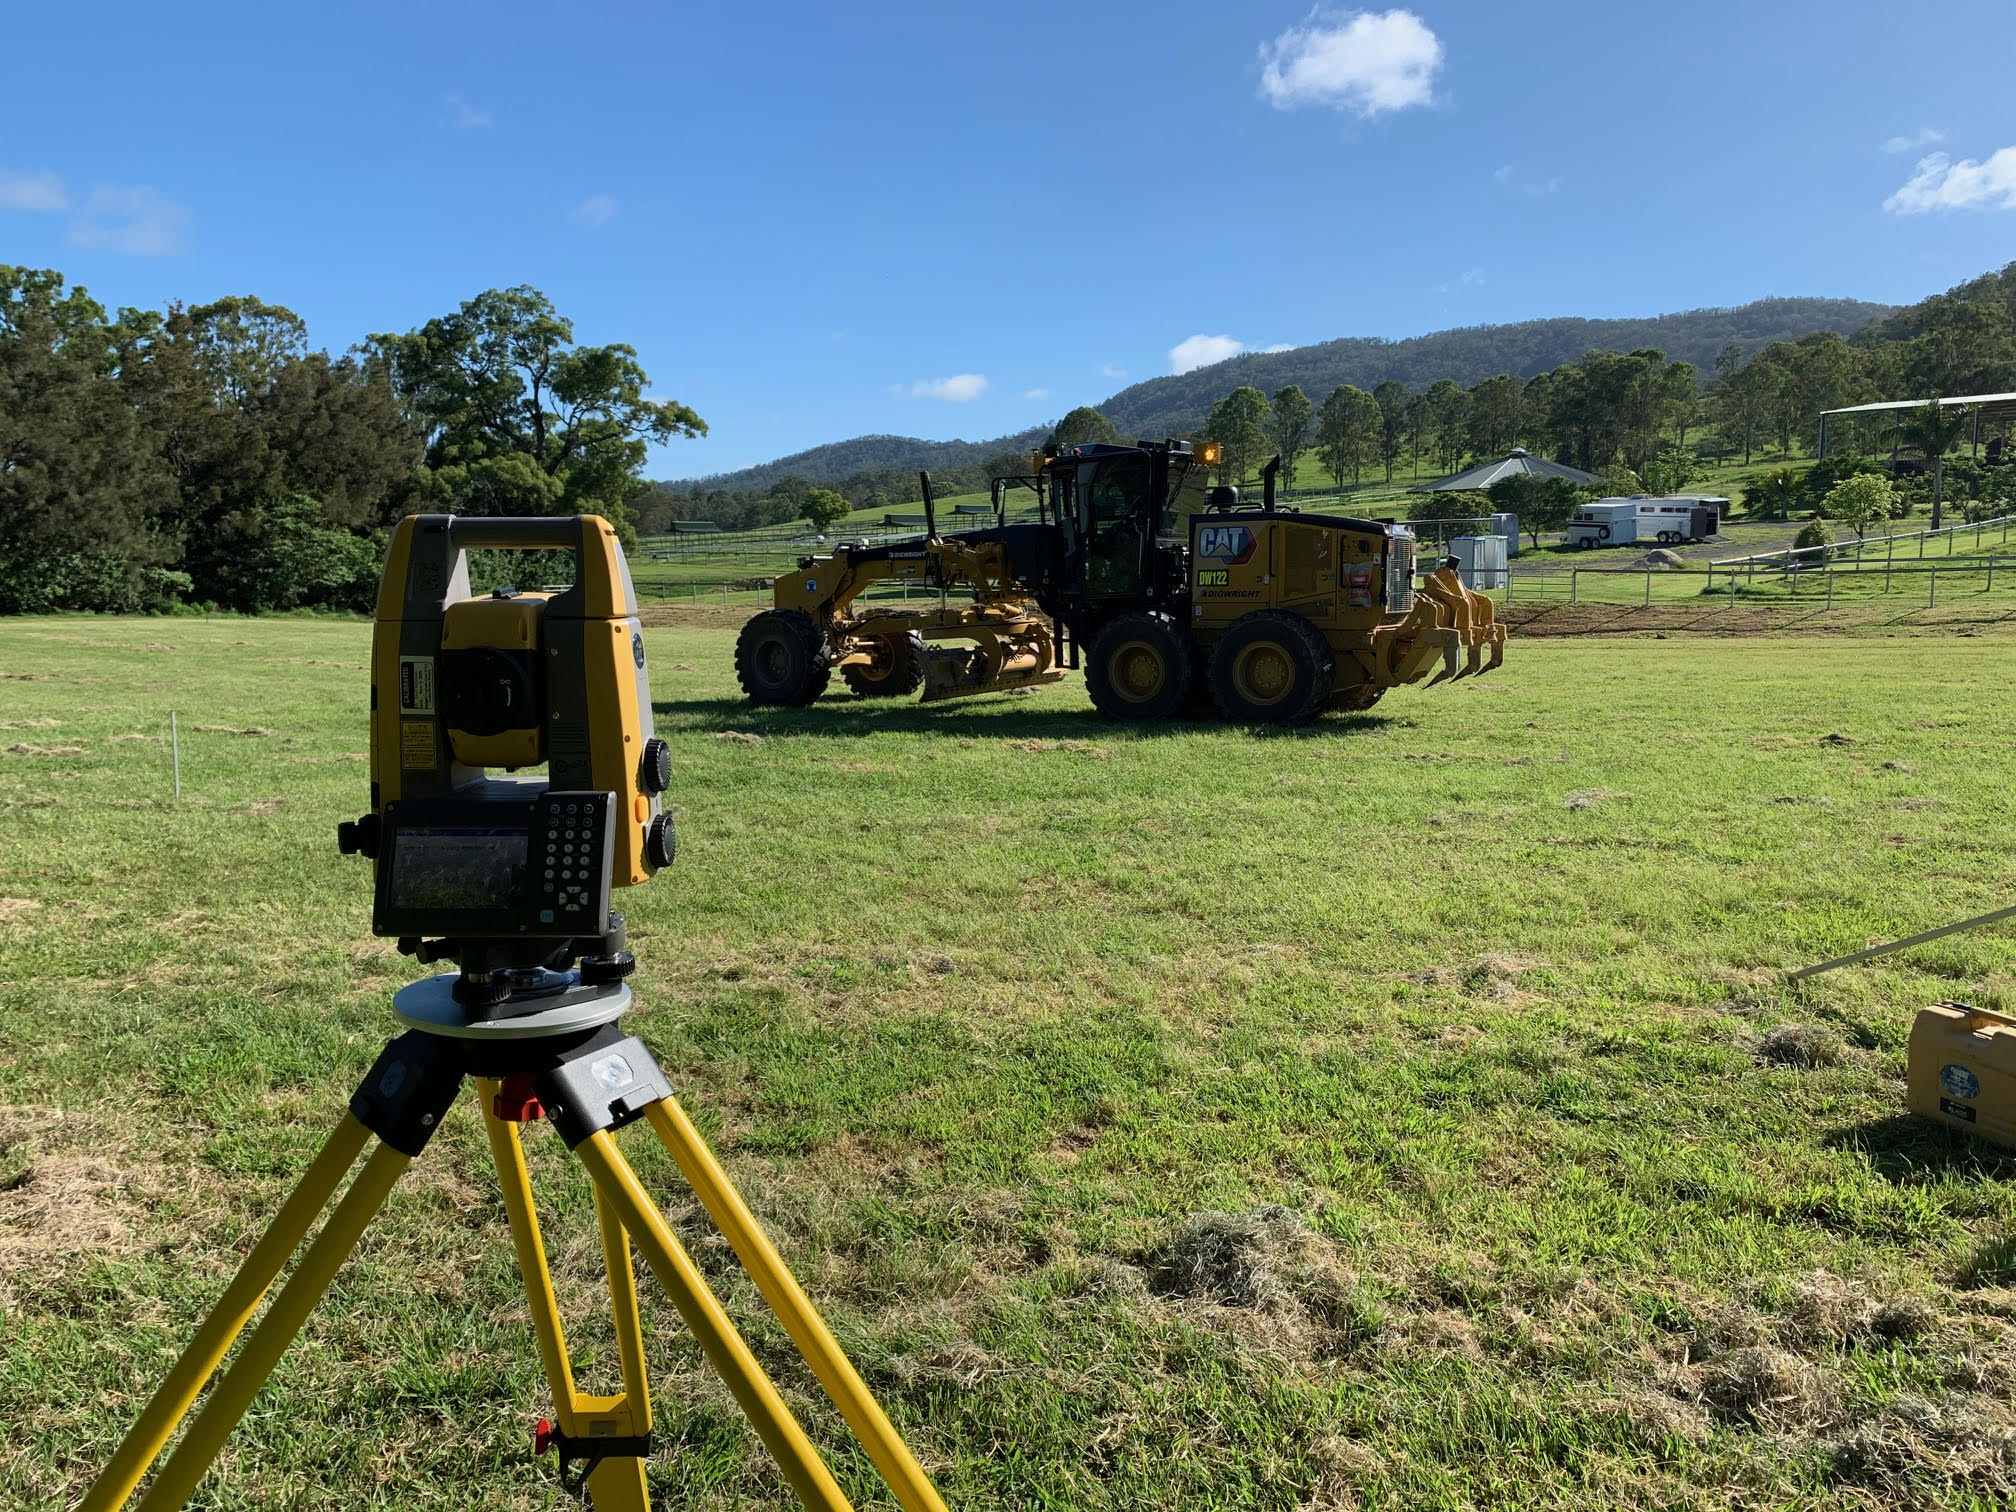 Surveying and GPS Equipment